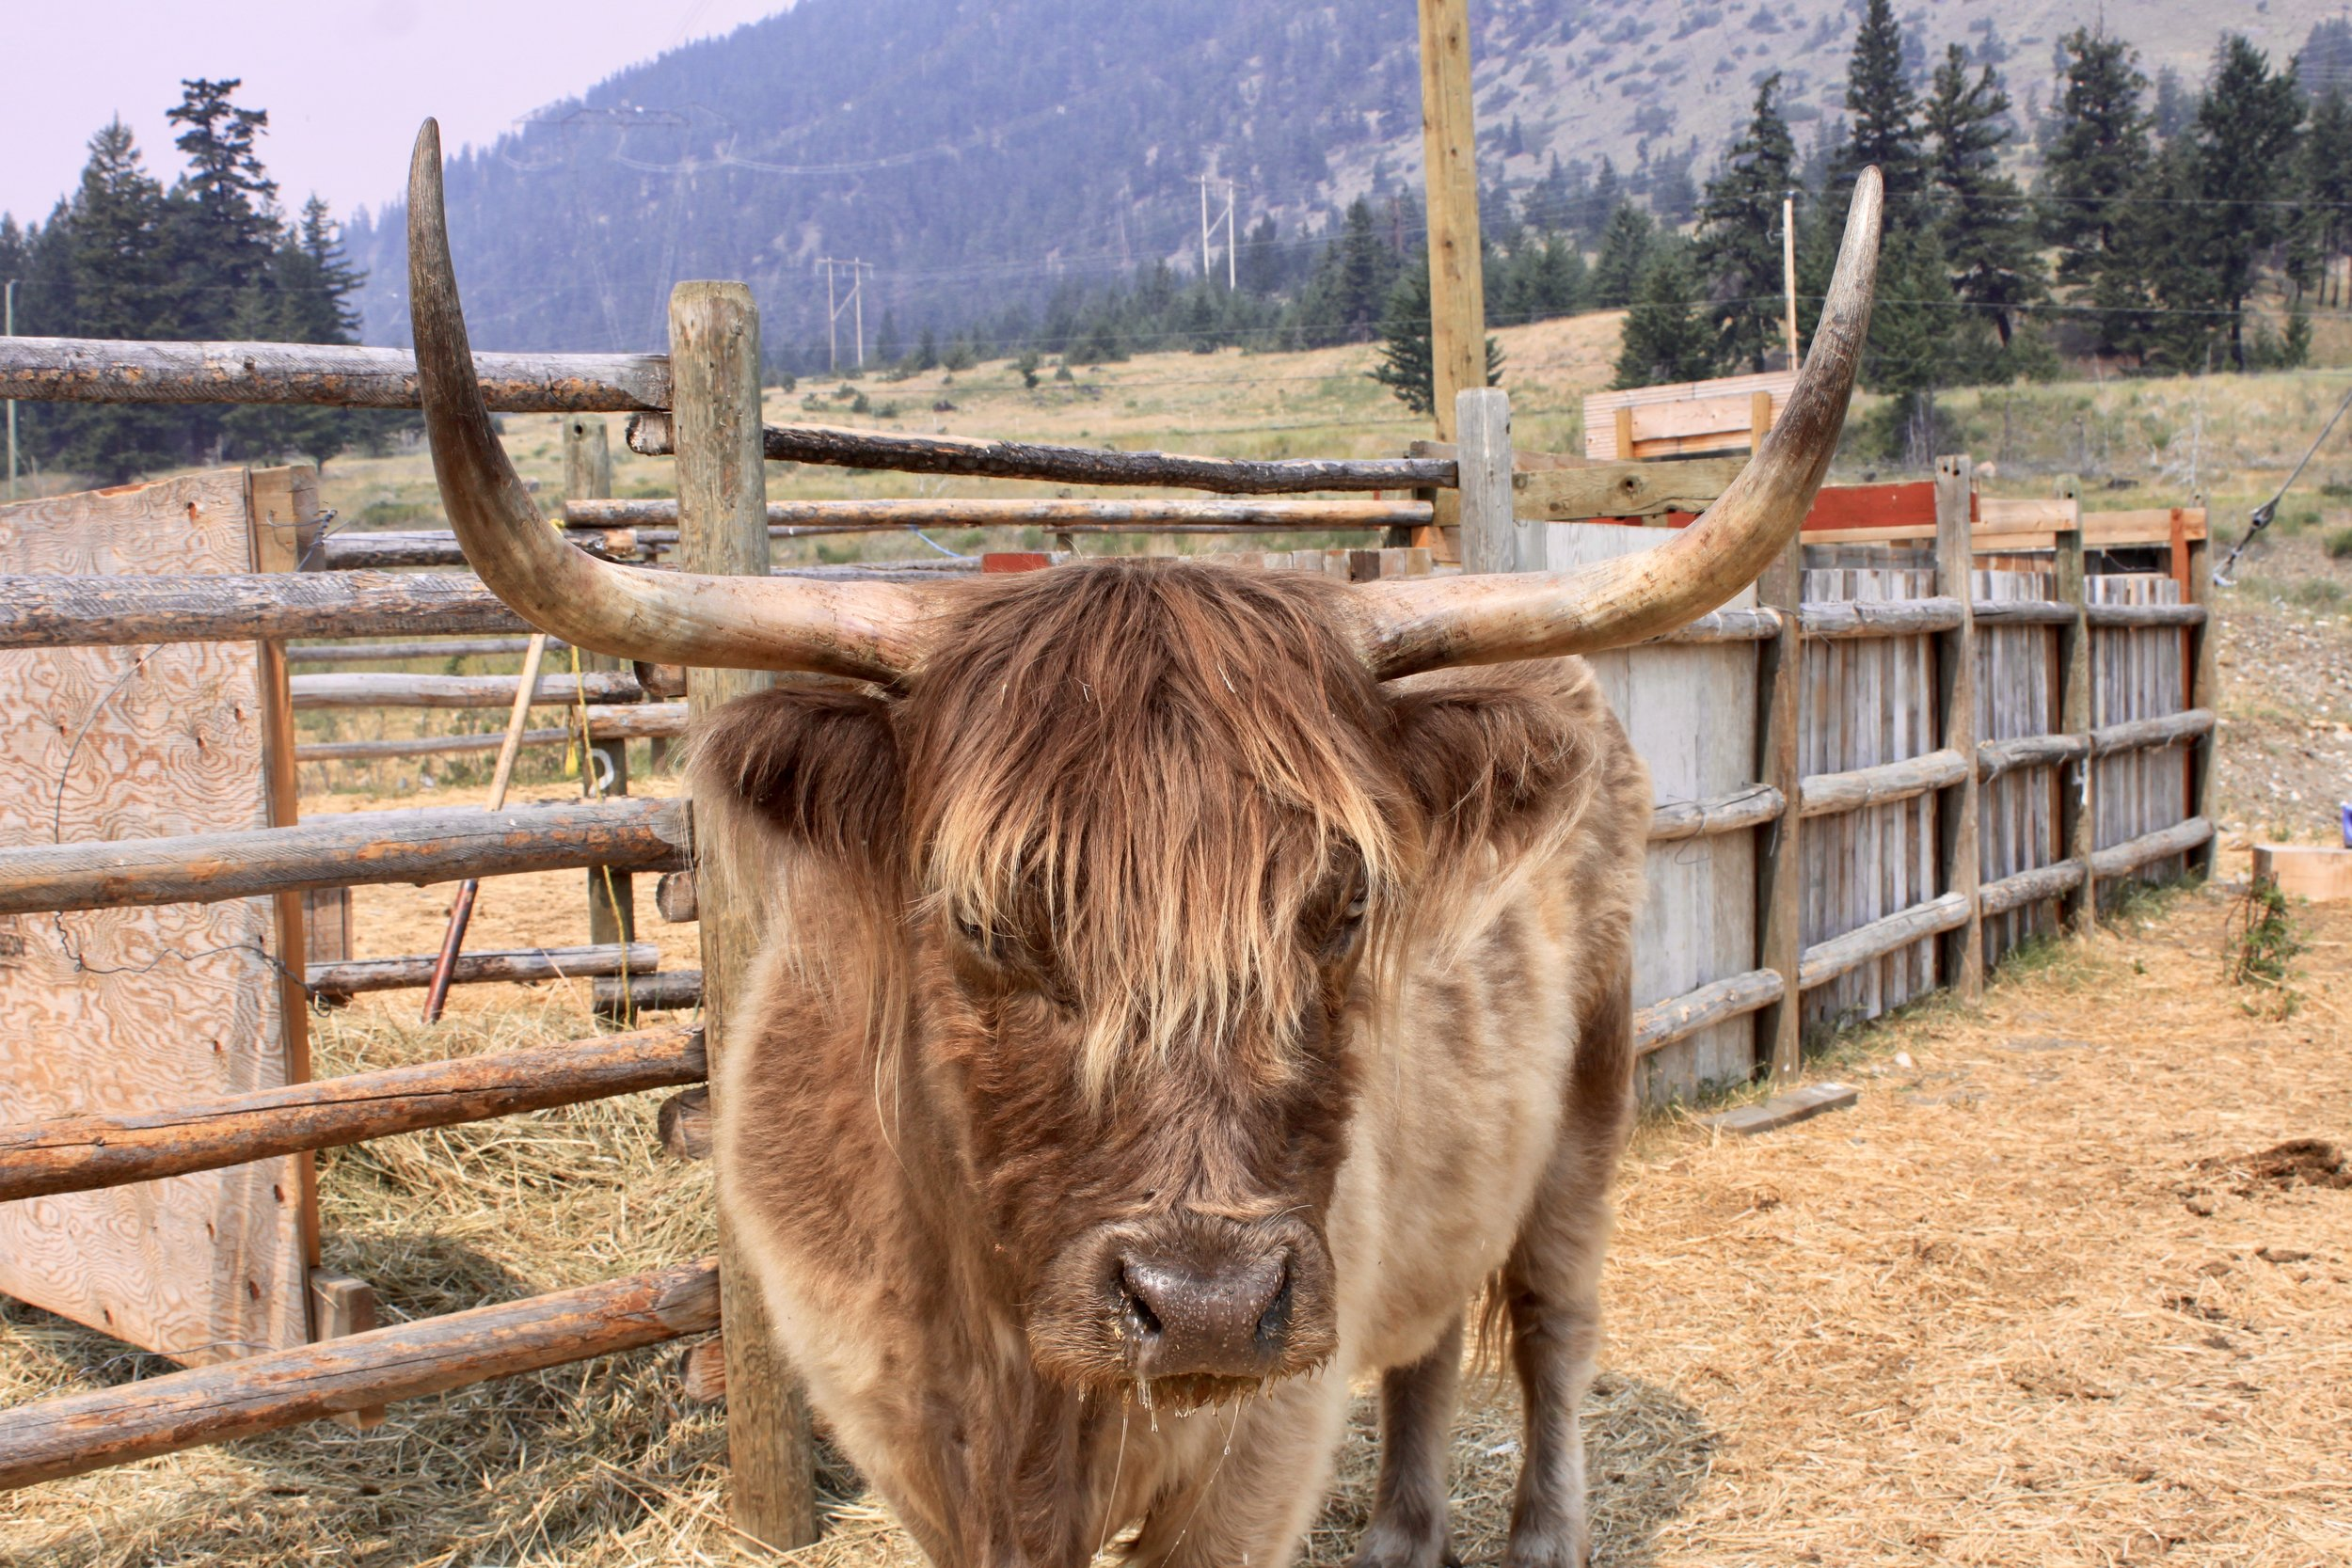 Scottish Highlander cow, easily recognized by its long hair.